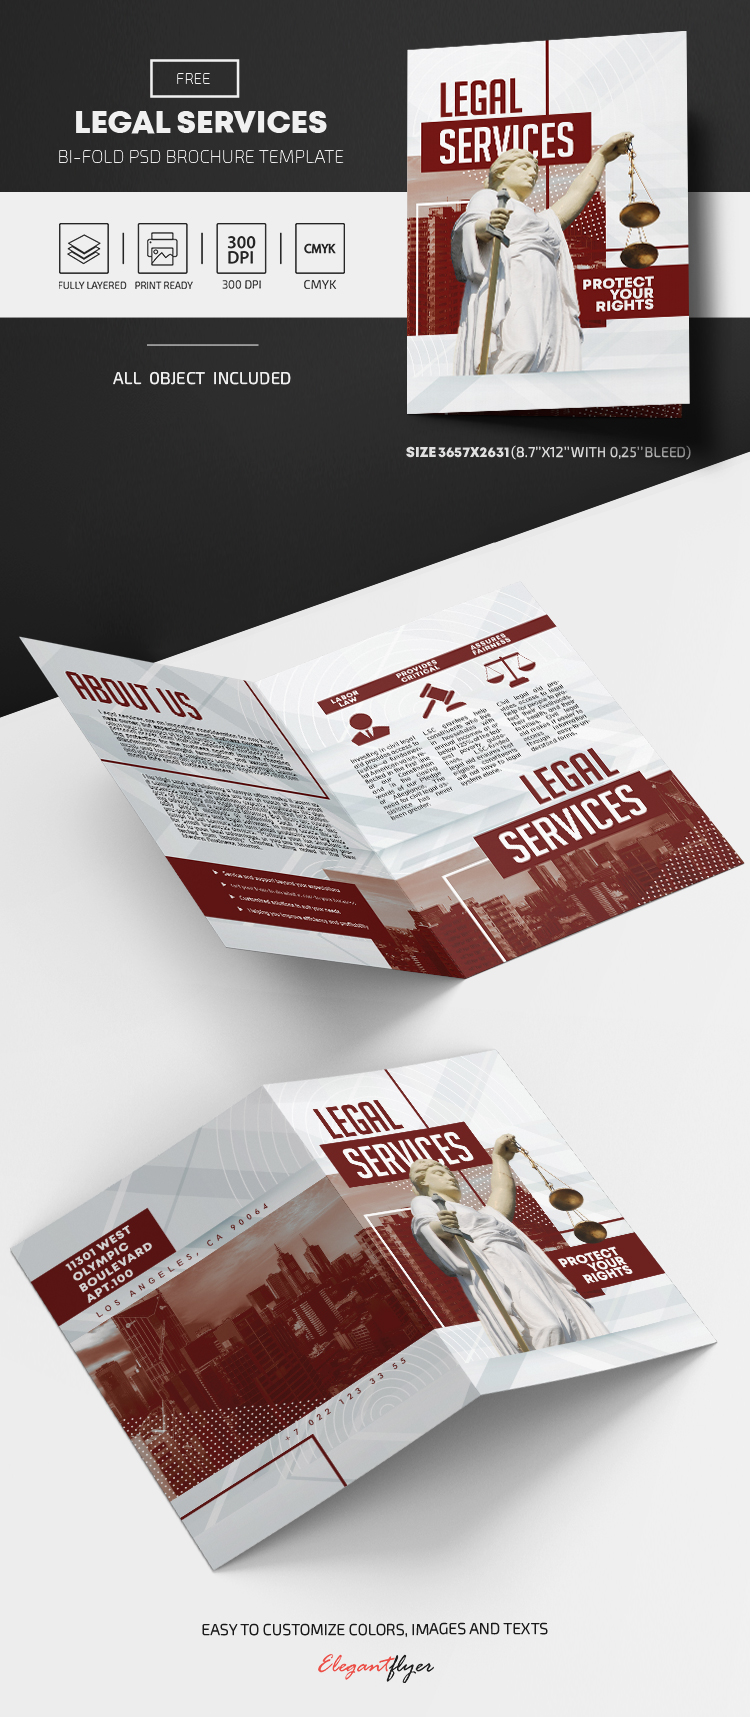 Legal Services – Free Bi-Fold Brochure PSD Template